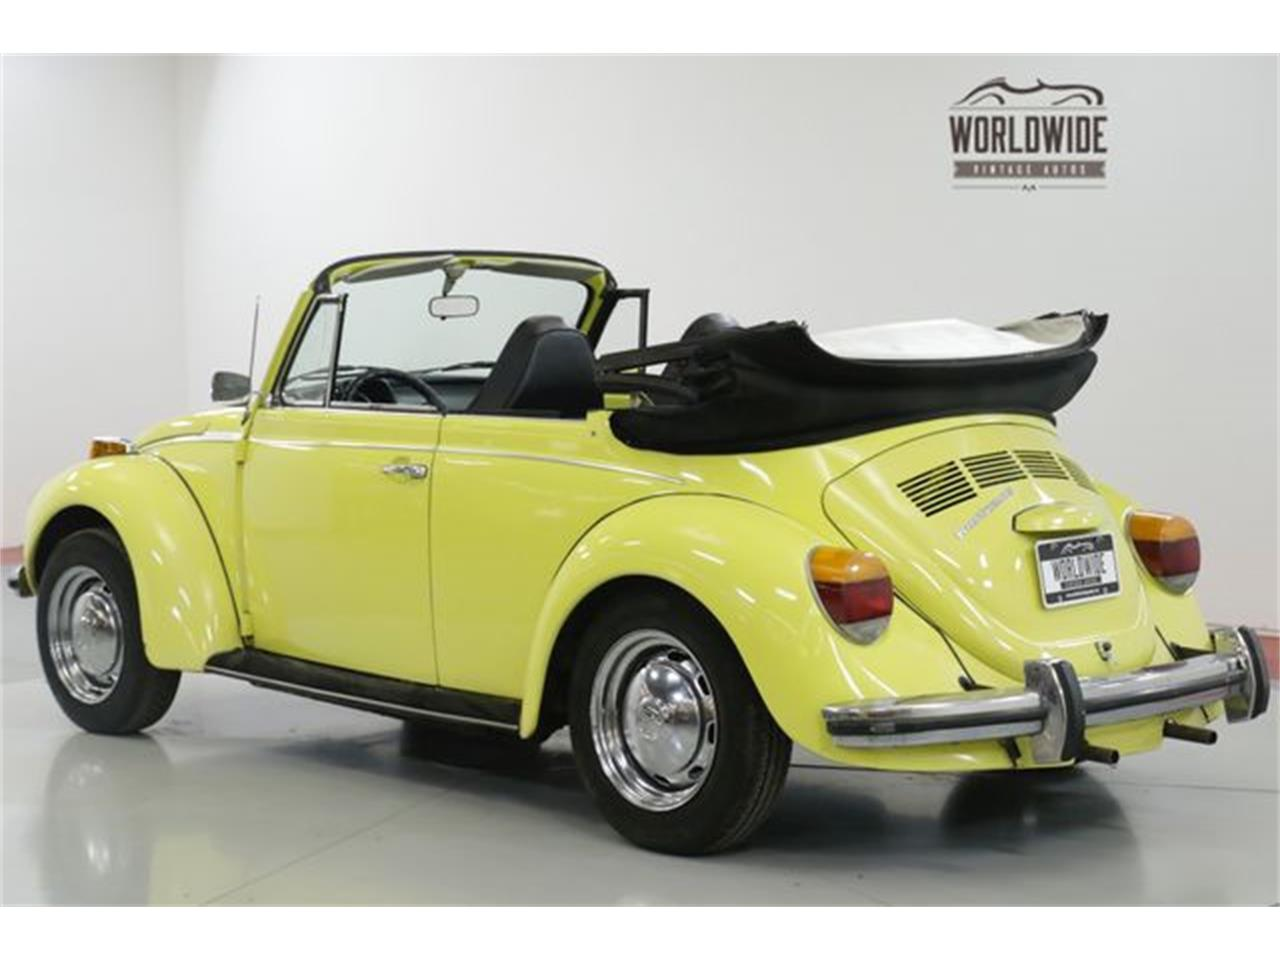 Large Picture of 1973 Volkswagen Beetle located in Colorado - $9,900.00 Offered by Worldwide Vintage Autos - PGMT